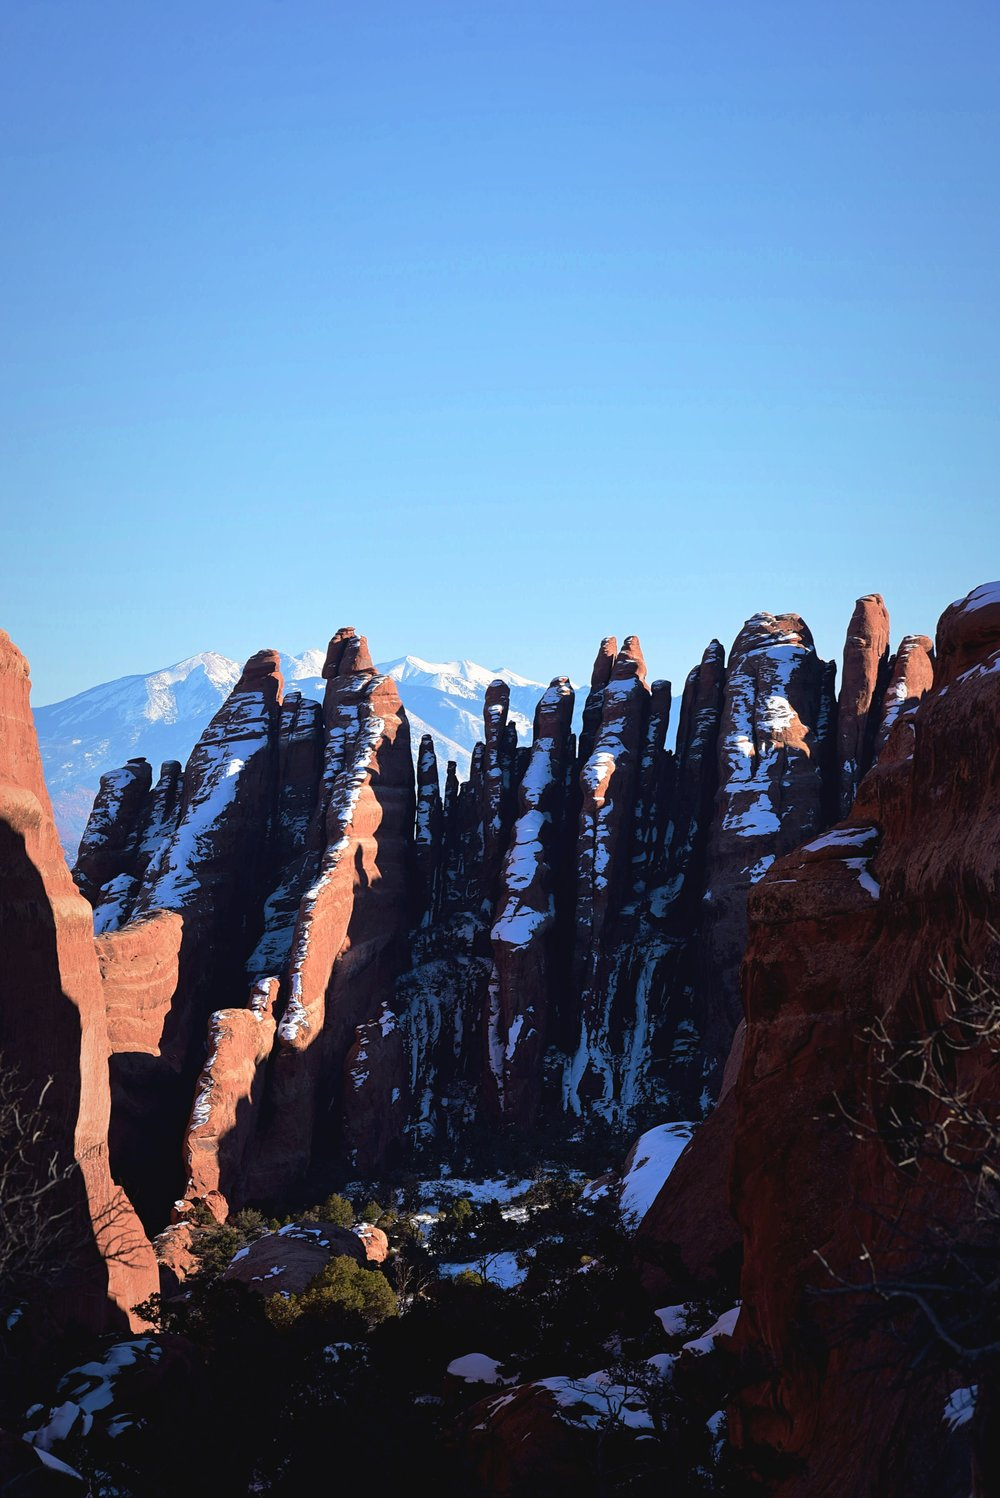 Winter transforms the stone in Arches National Park.